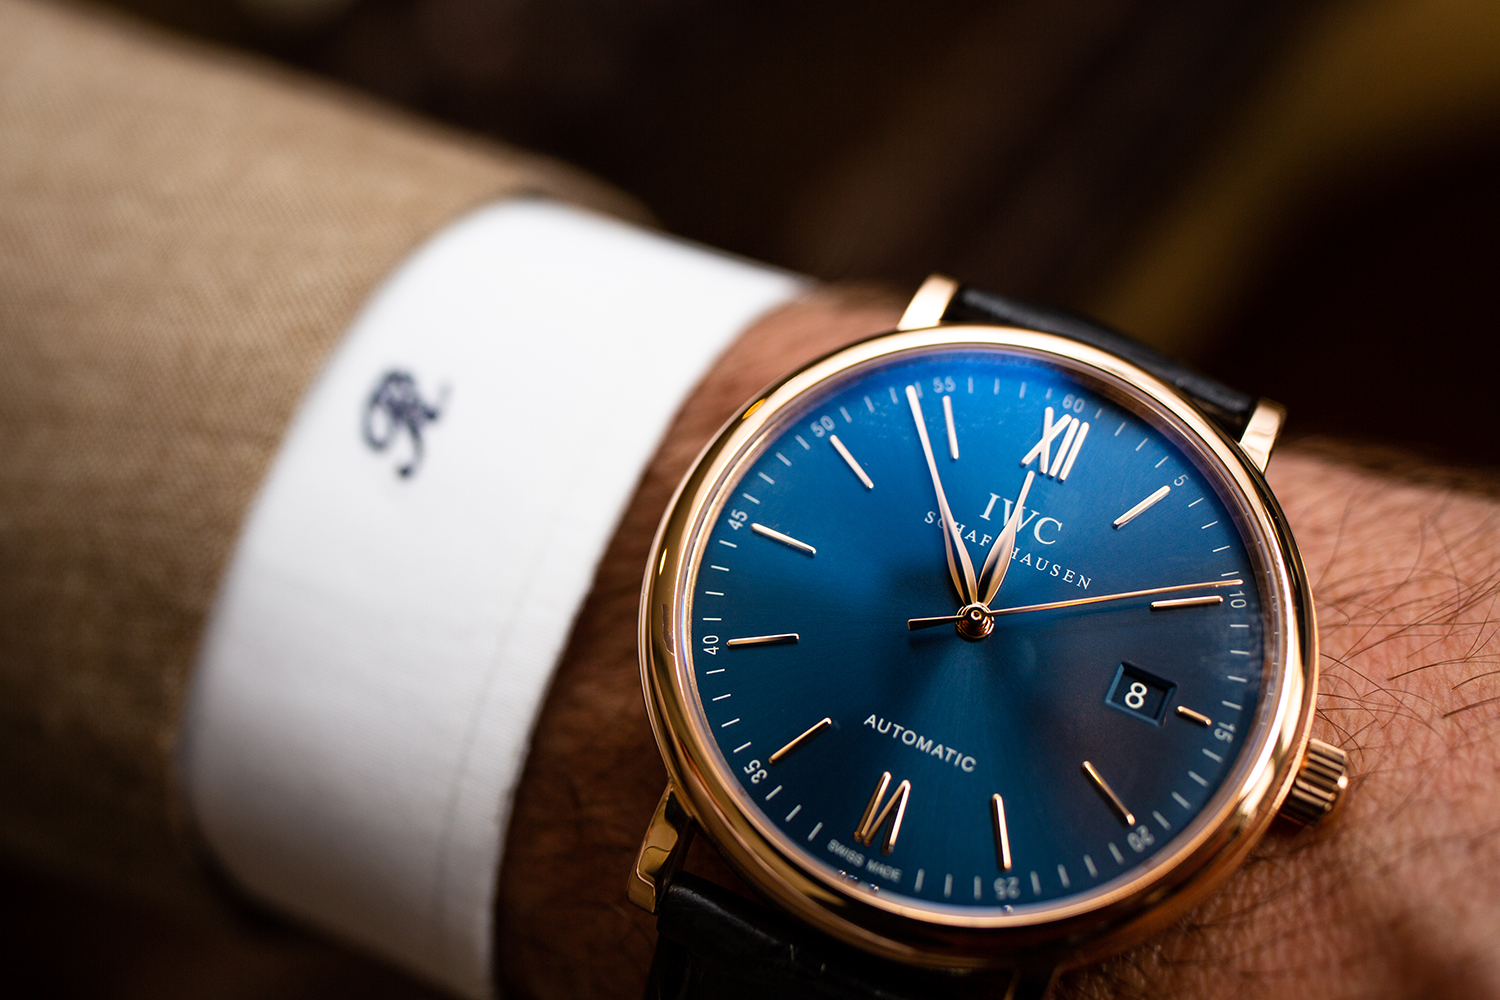 IWC blue faced watch on mans wrist.